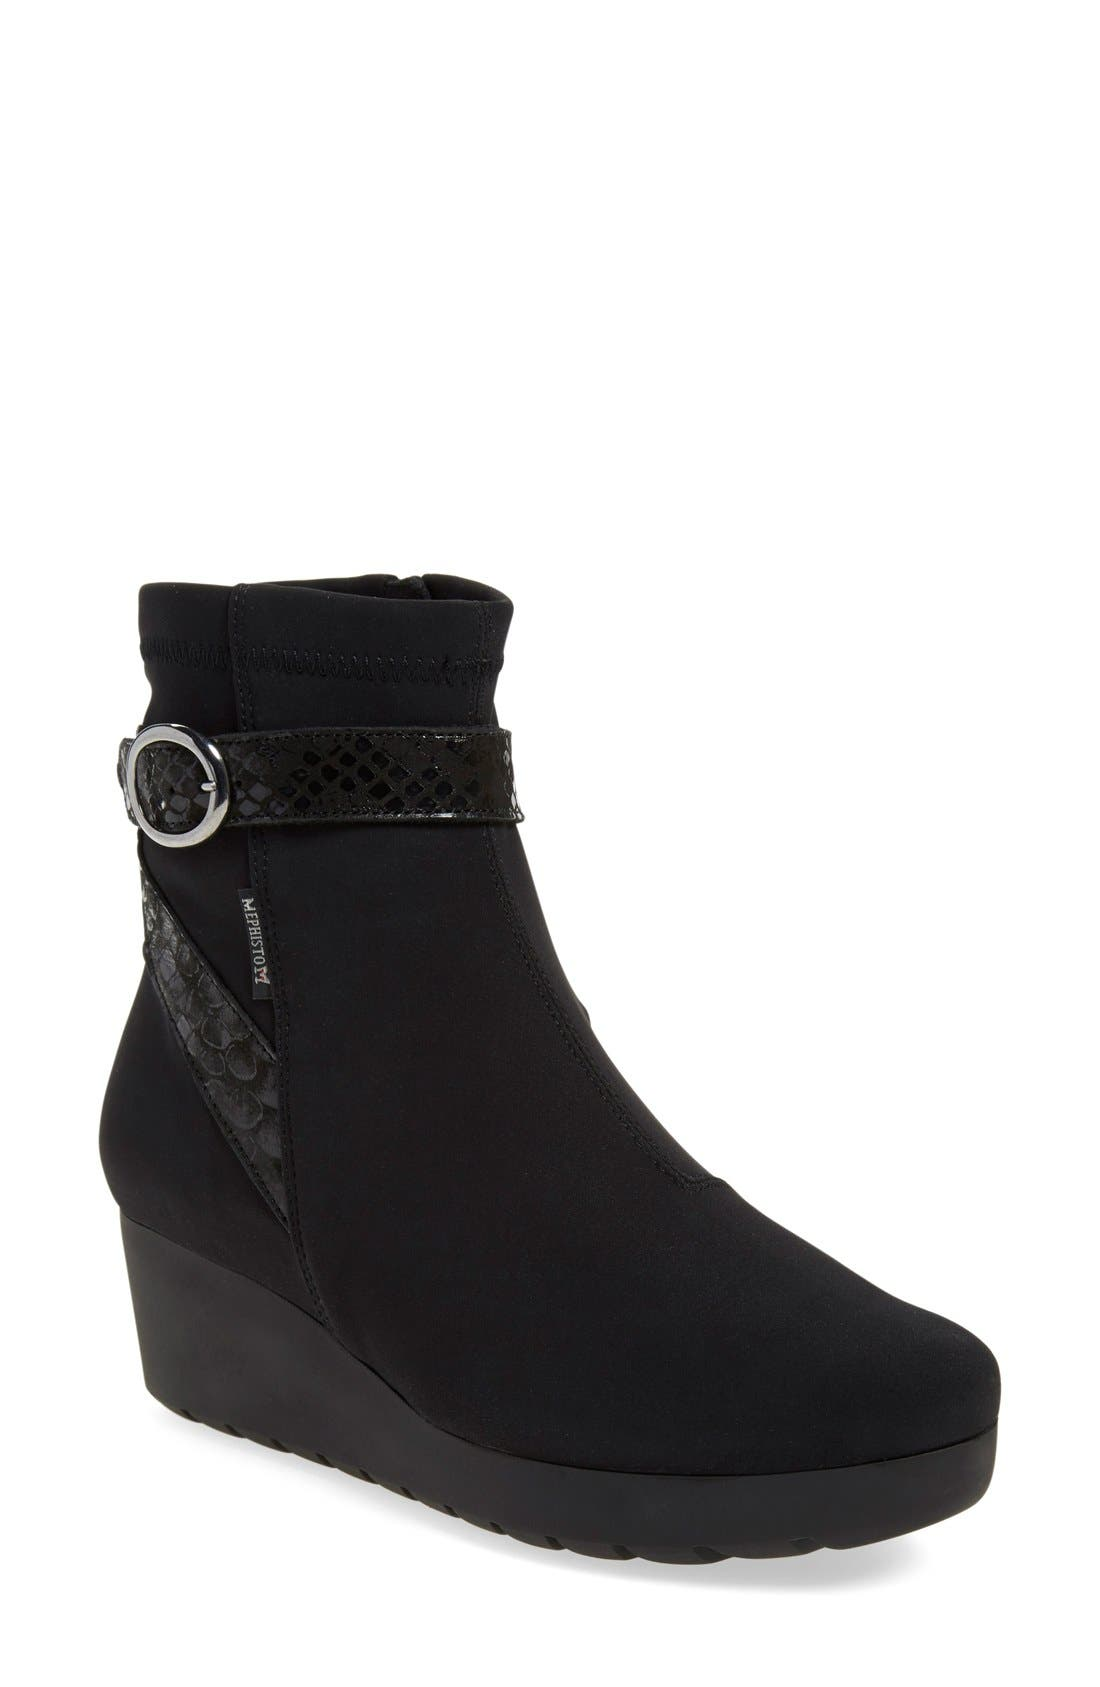 Alternate Image 1 Selected - Mephisto 'Tyba' Waterproof Wedge Bootie (Women)